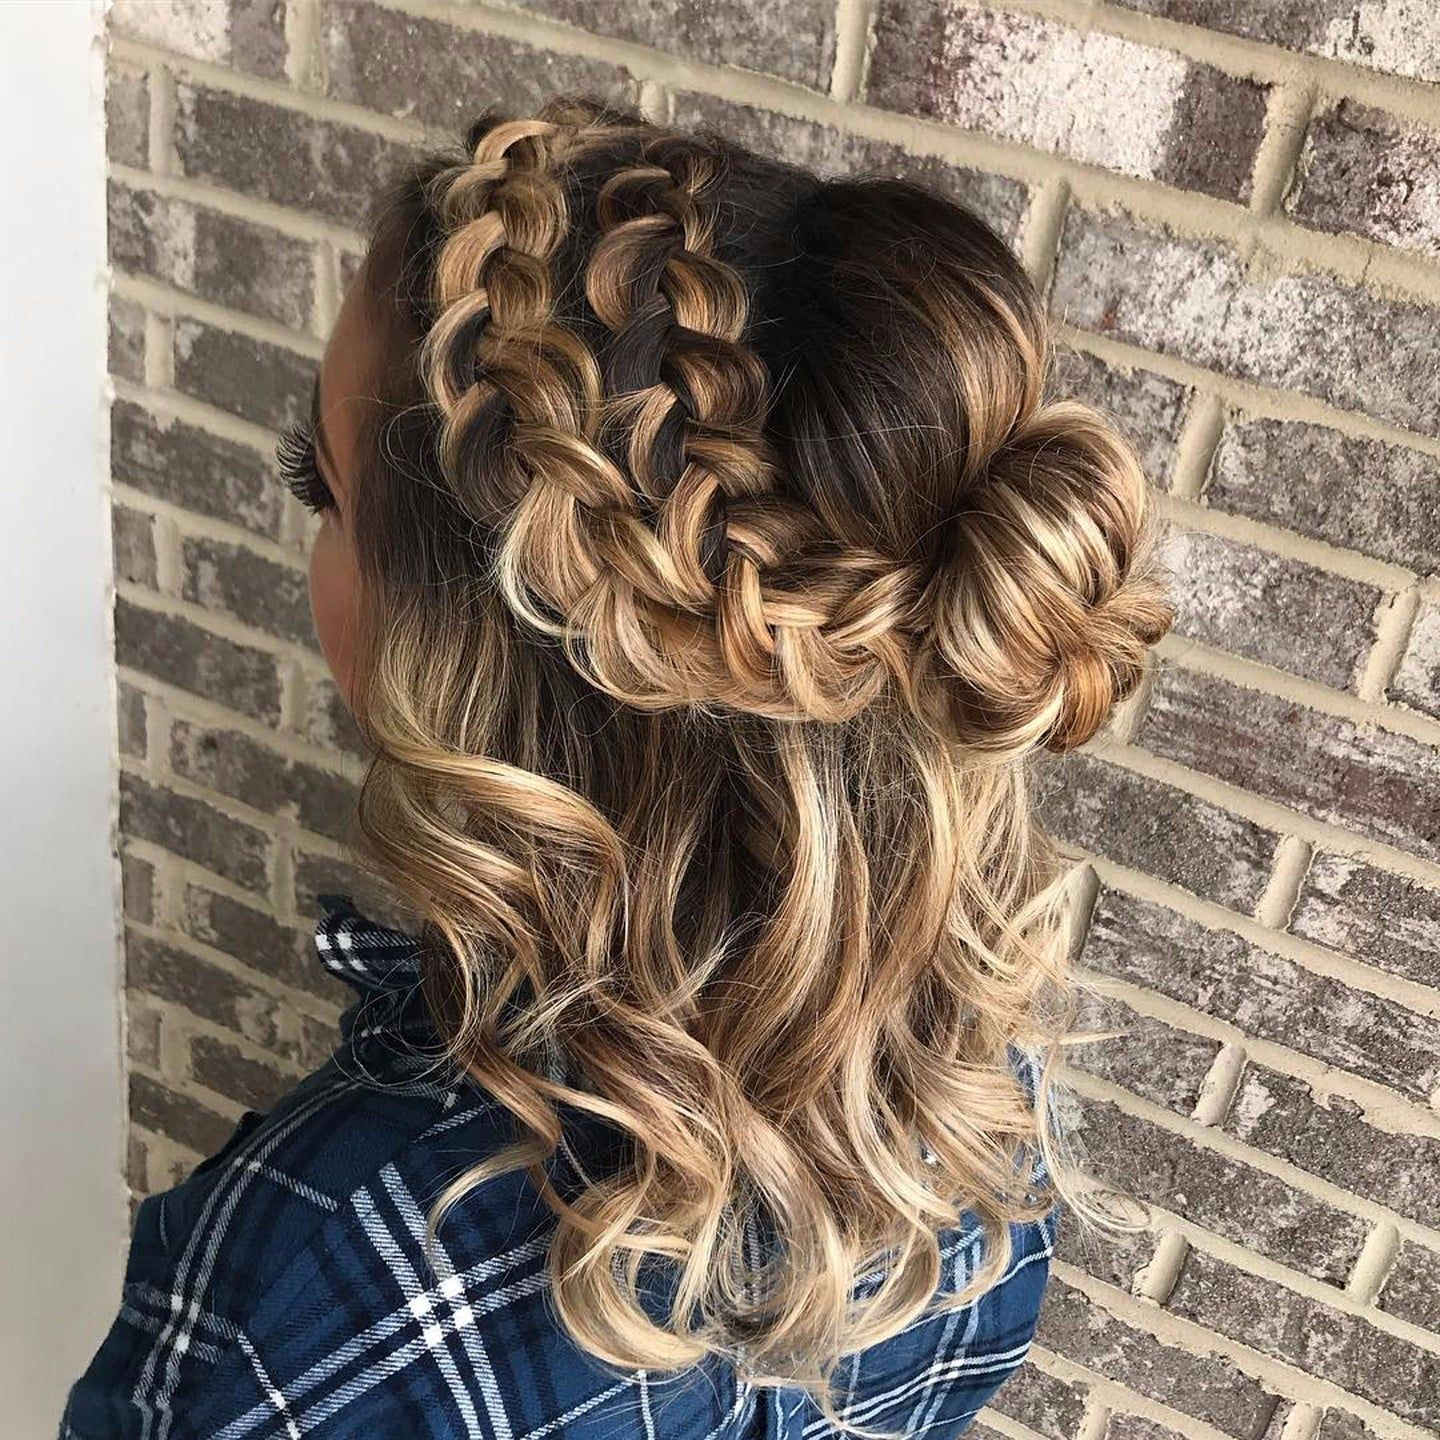 Party Hairstyles www.thestore786.com (With images) | Party hairstyles, Hair styles, Hair lengths